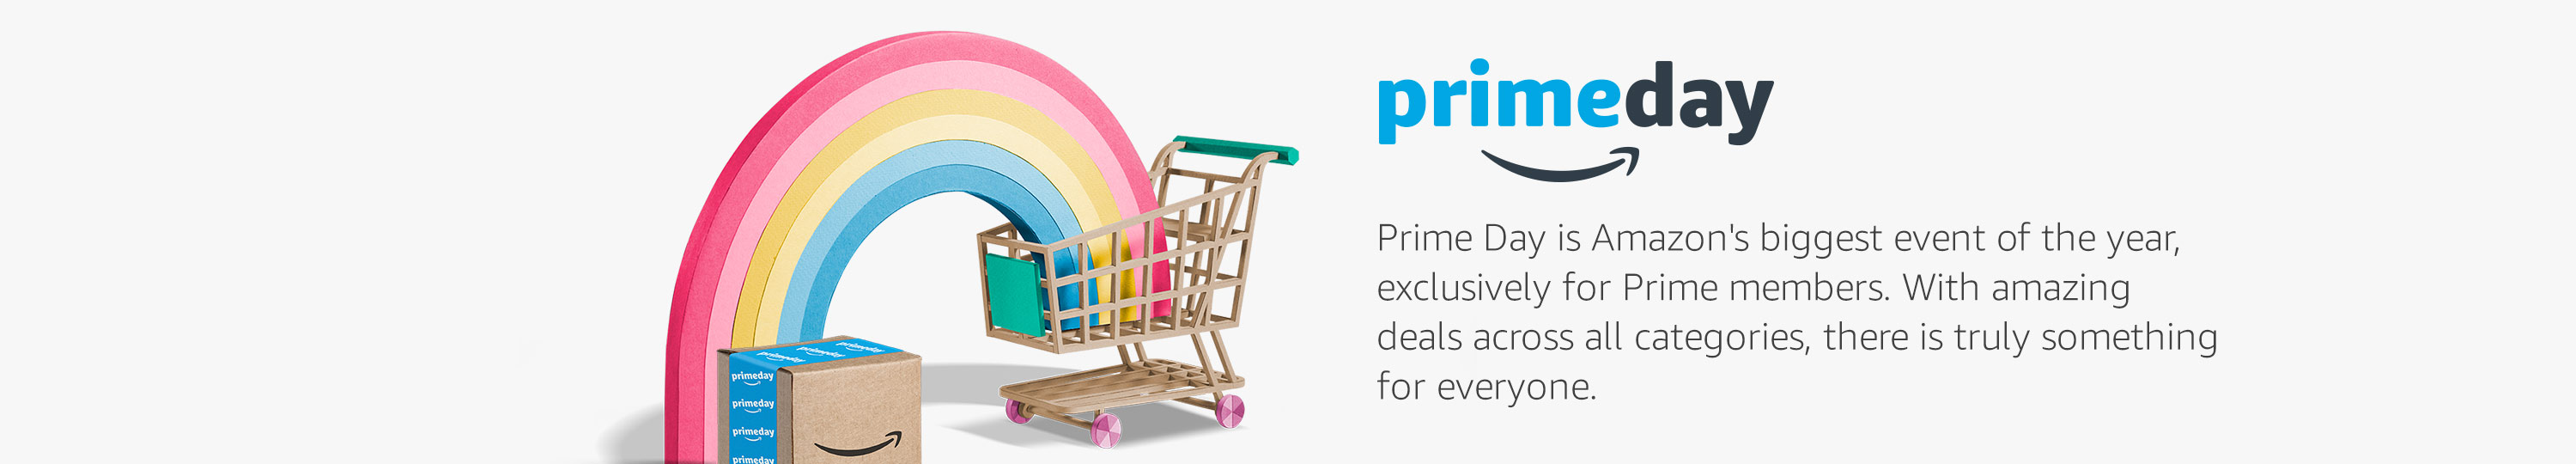 Amazon prime membership phone number - Save On Prime Day